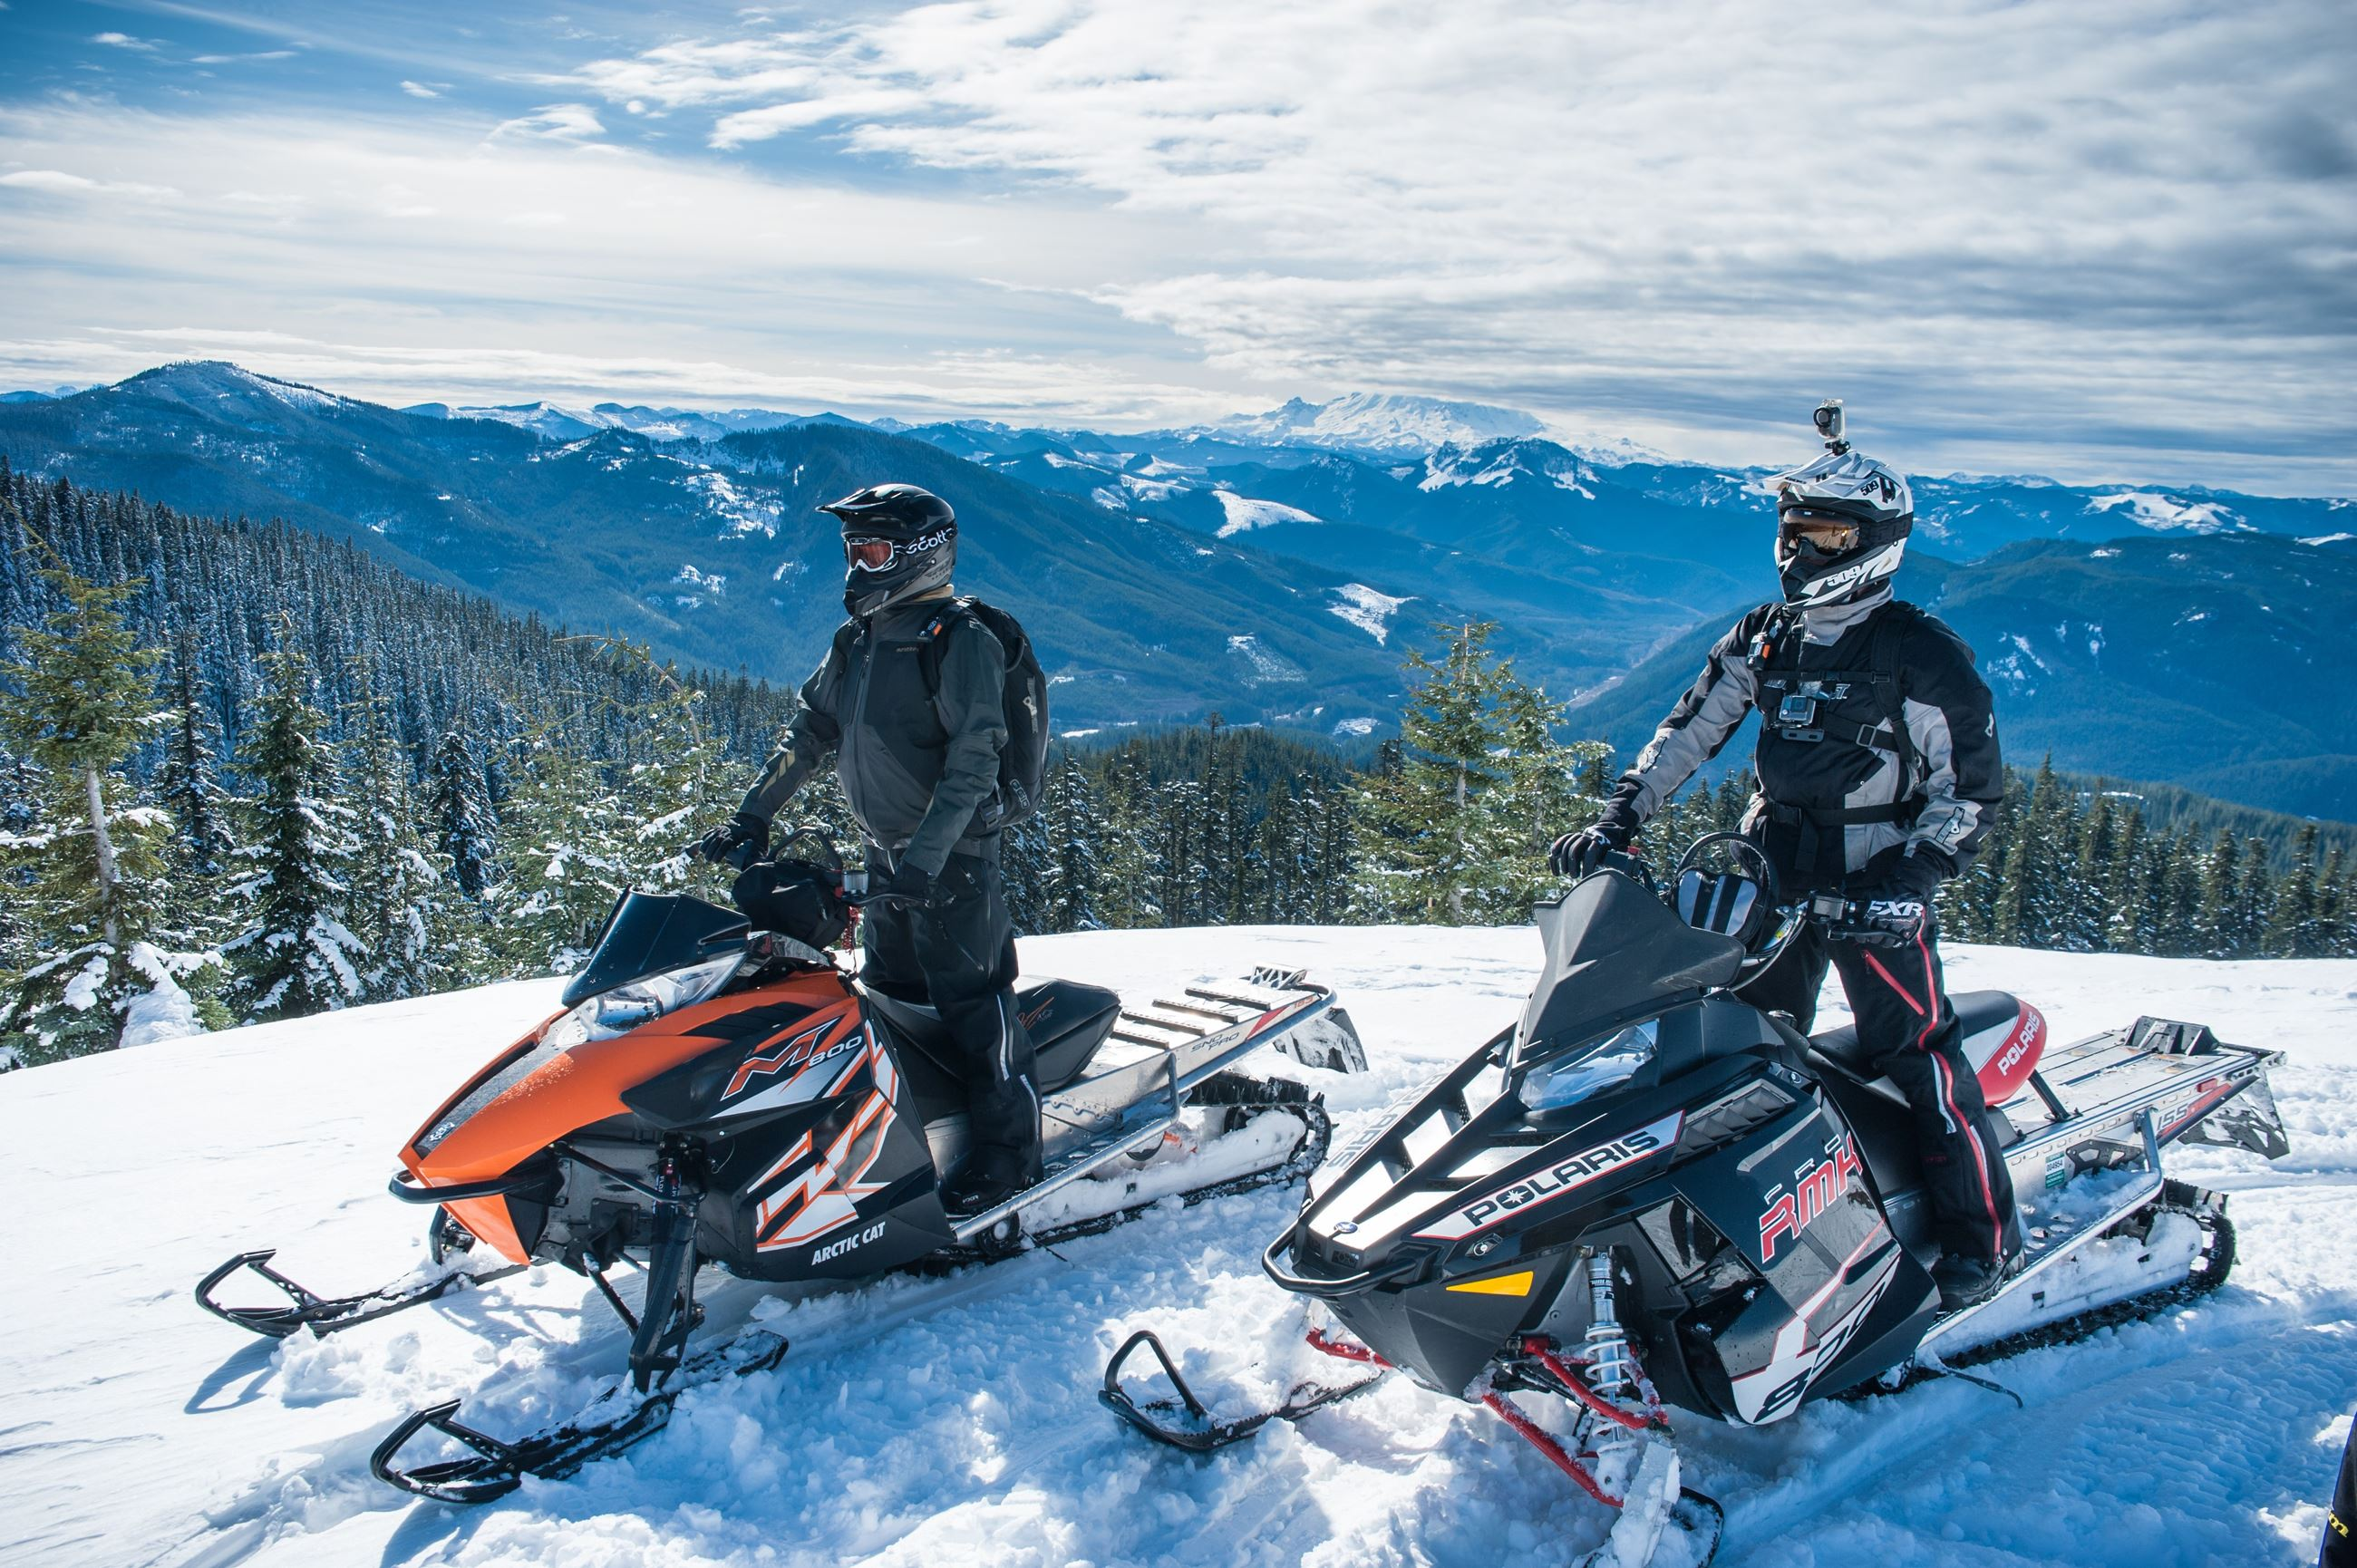 11.18.20 WR blog snowmobiles at Crystal